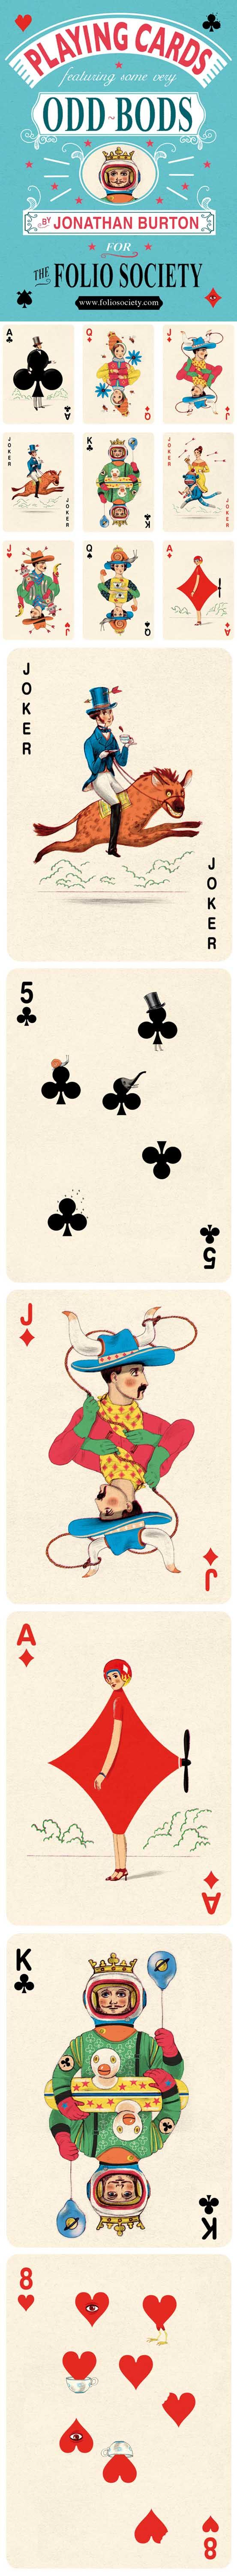 Jonathan Burton - playing card portraits - though i foresee lots of queen of hearts and ace of spades requests